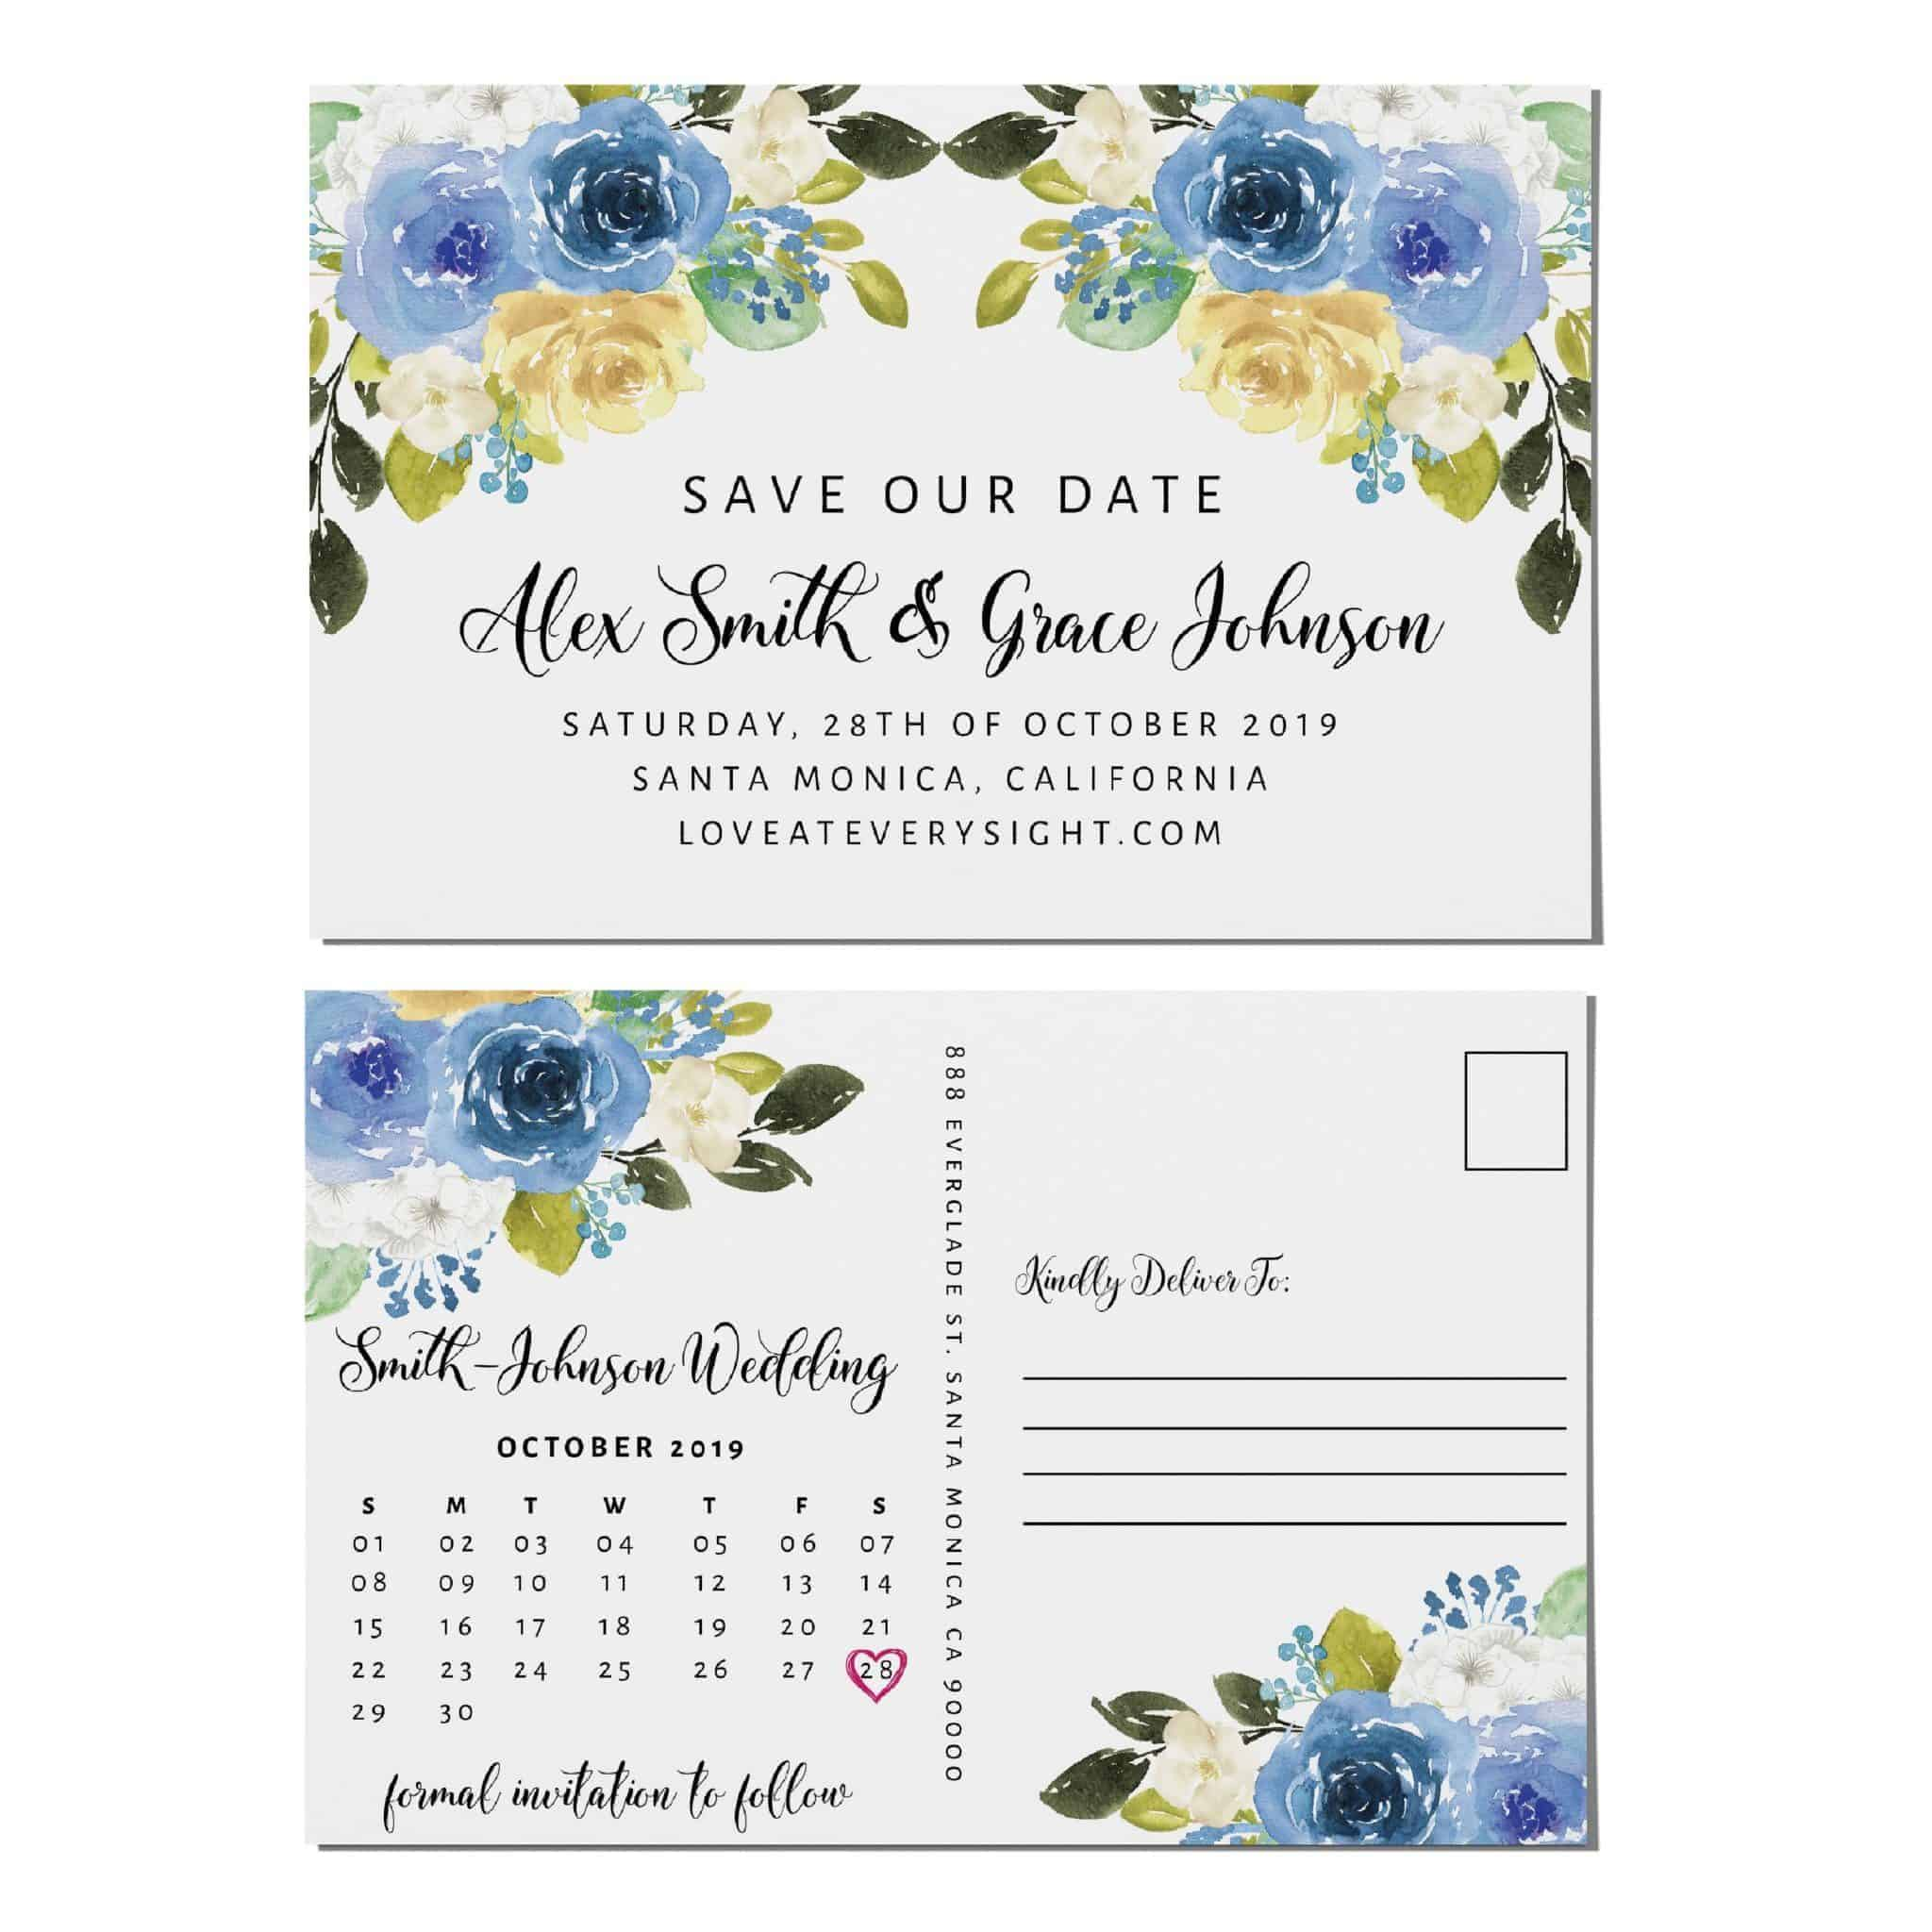 Save the Date Wedding Announcement Postcards, Wedding Save the Date Postcards, Calendar Announcement for Friends Save the Date Cards